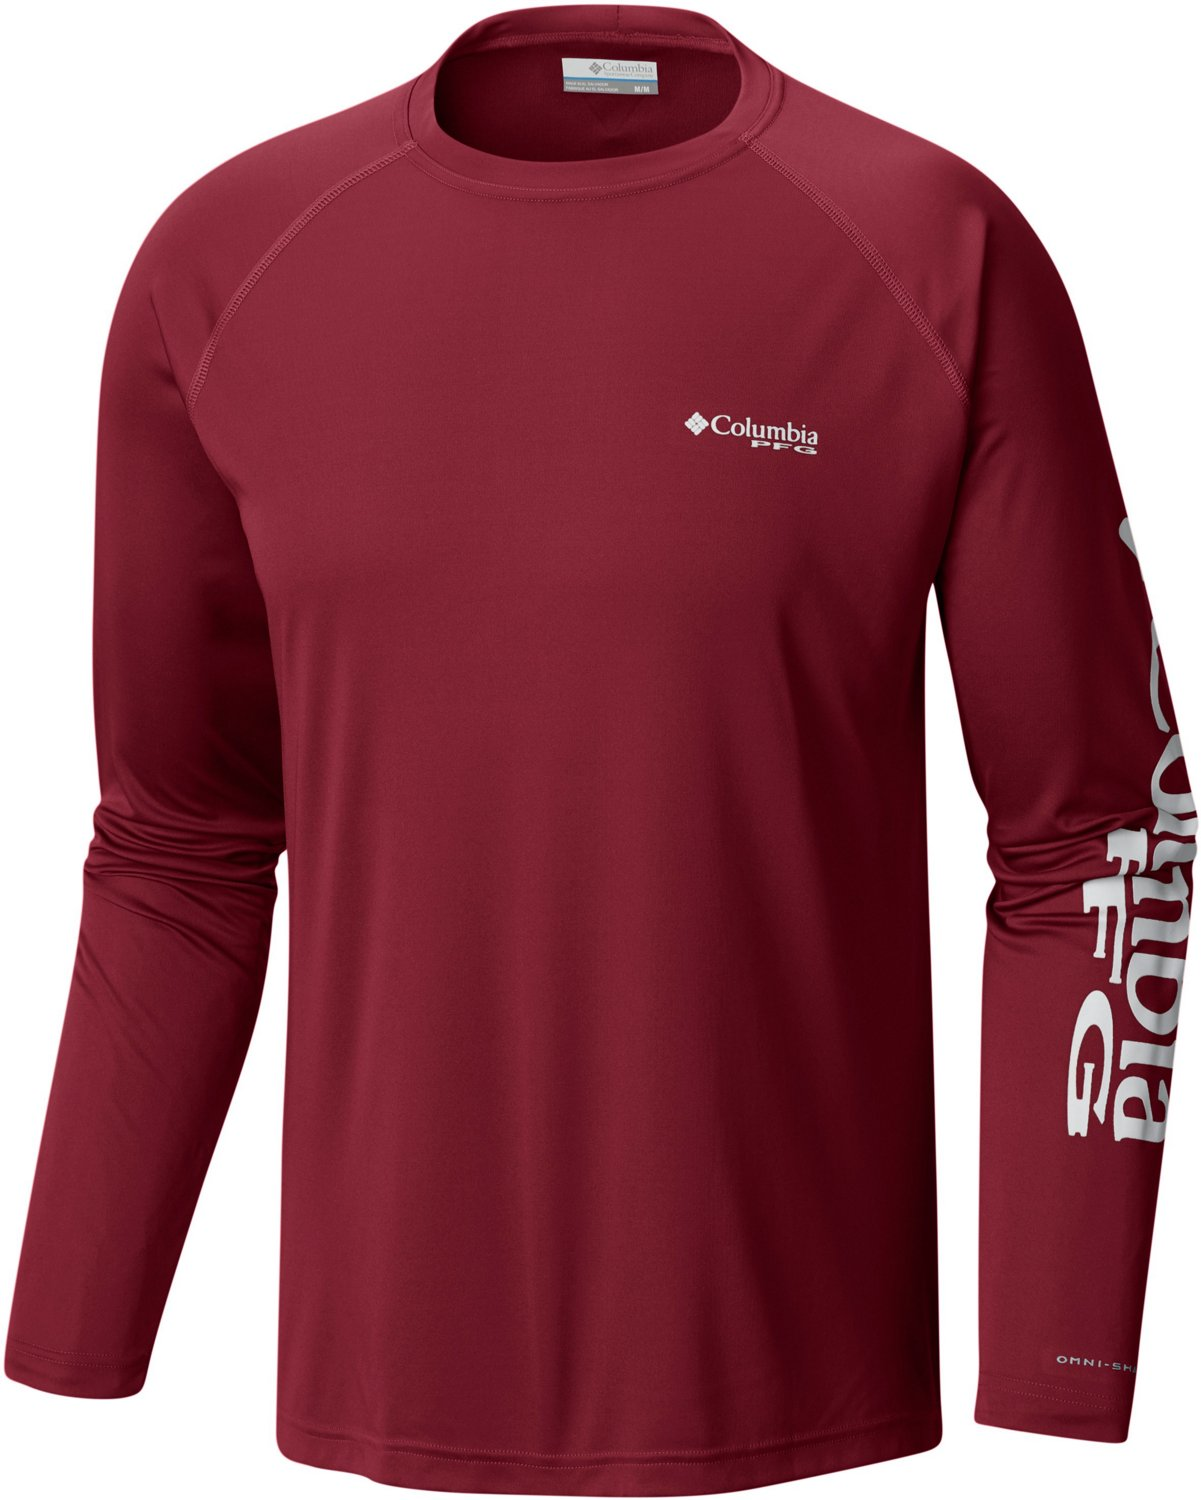 c39f0264d38b Display product reviews for Columbia Sportswear Performance Fishing Gear  Terminal Tackle Big & Tall Long Sleeve